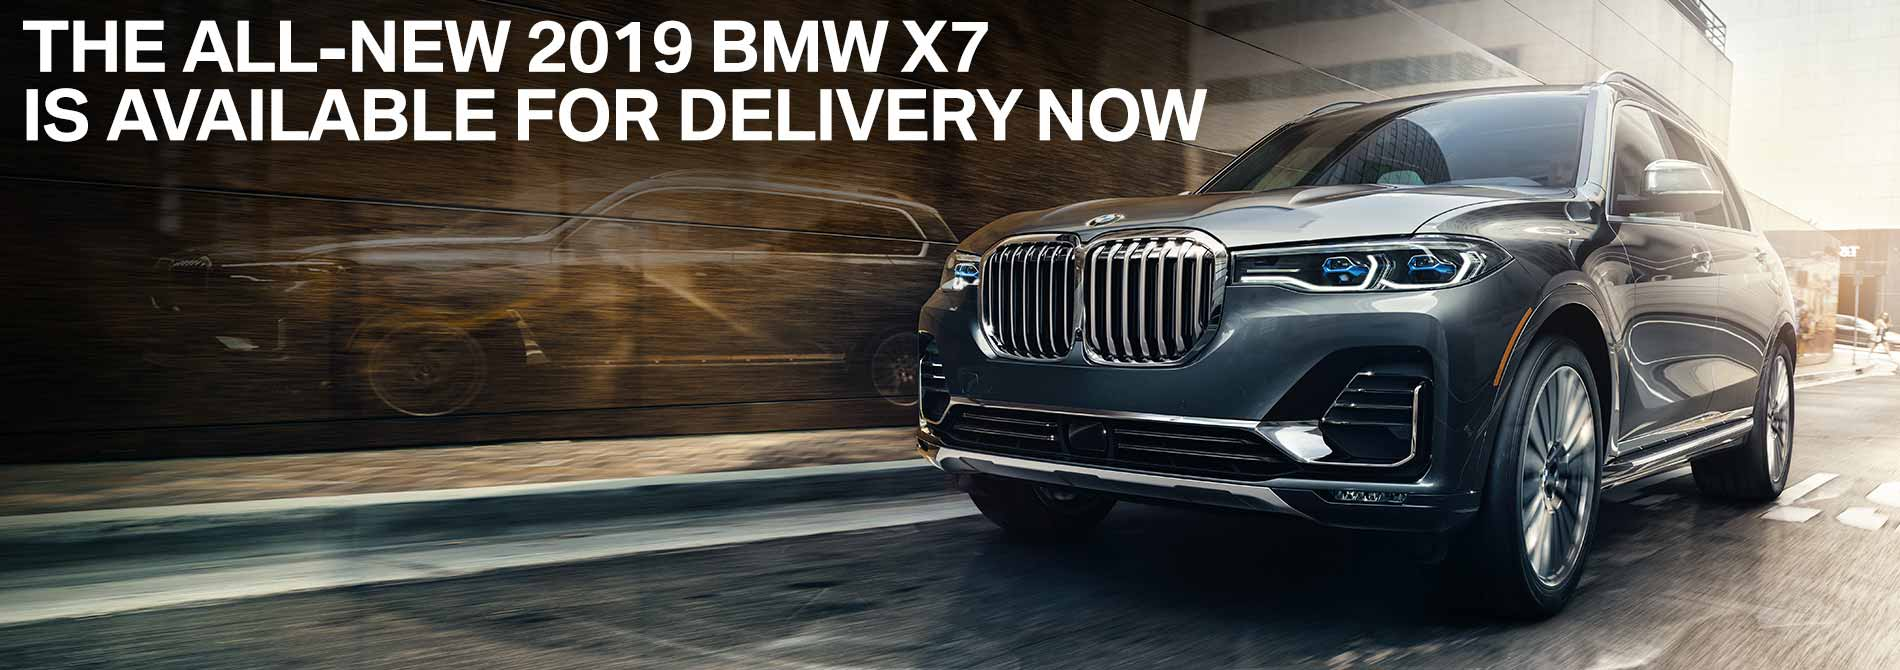 All-New X7